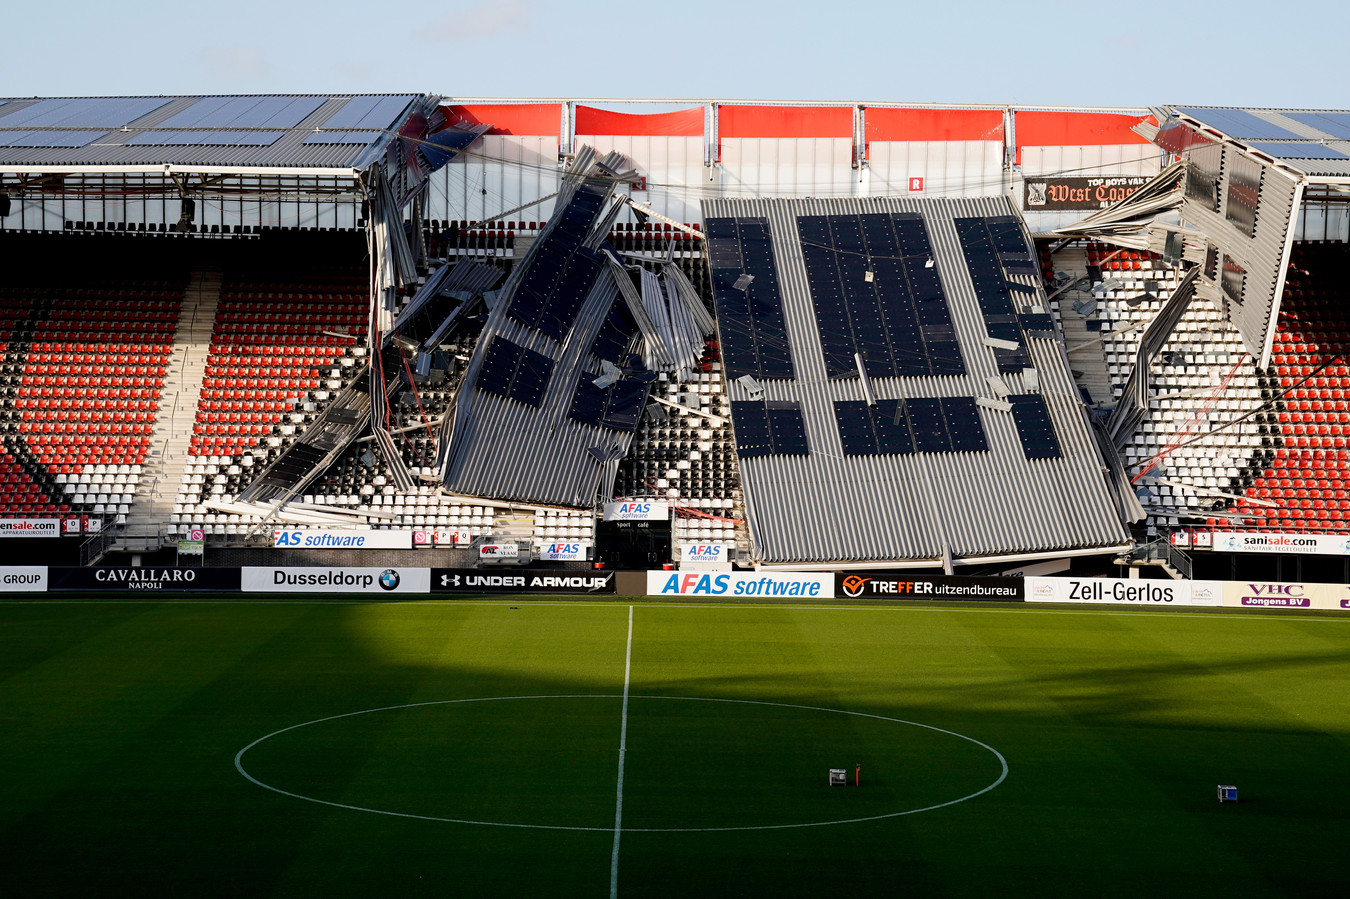 Roof stadium of AZ Alkmaar collapsed, stadion, estadio during Roof stadium of AZ Alkmaar collapsed NETHERLANDS, BELGIUM, LUXEMBURG ONLY COPYRIGHT BSR/SOCCRATES